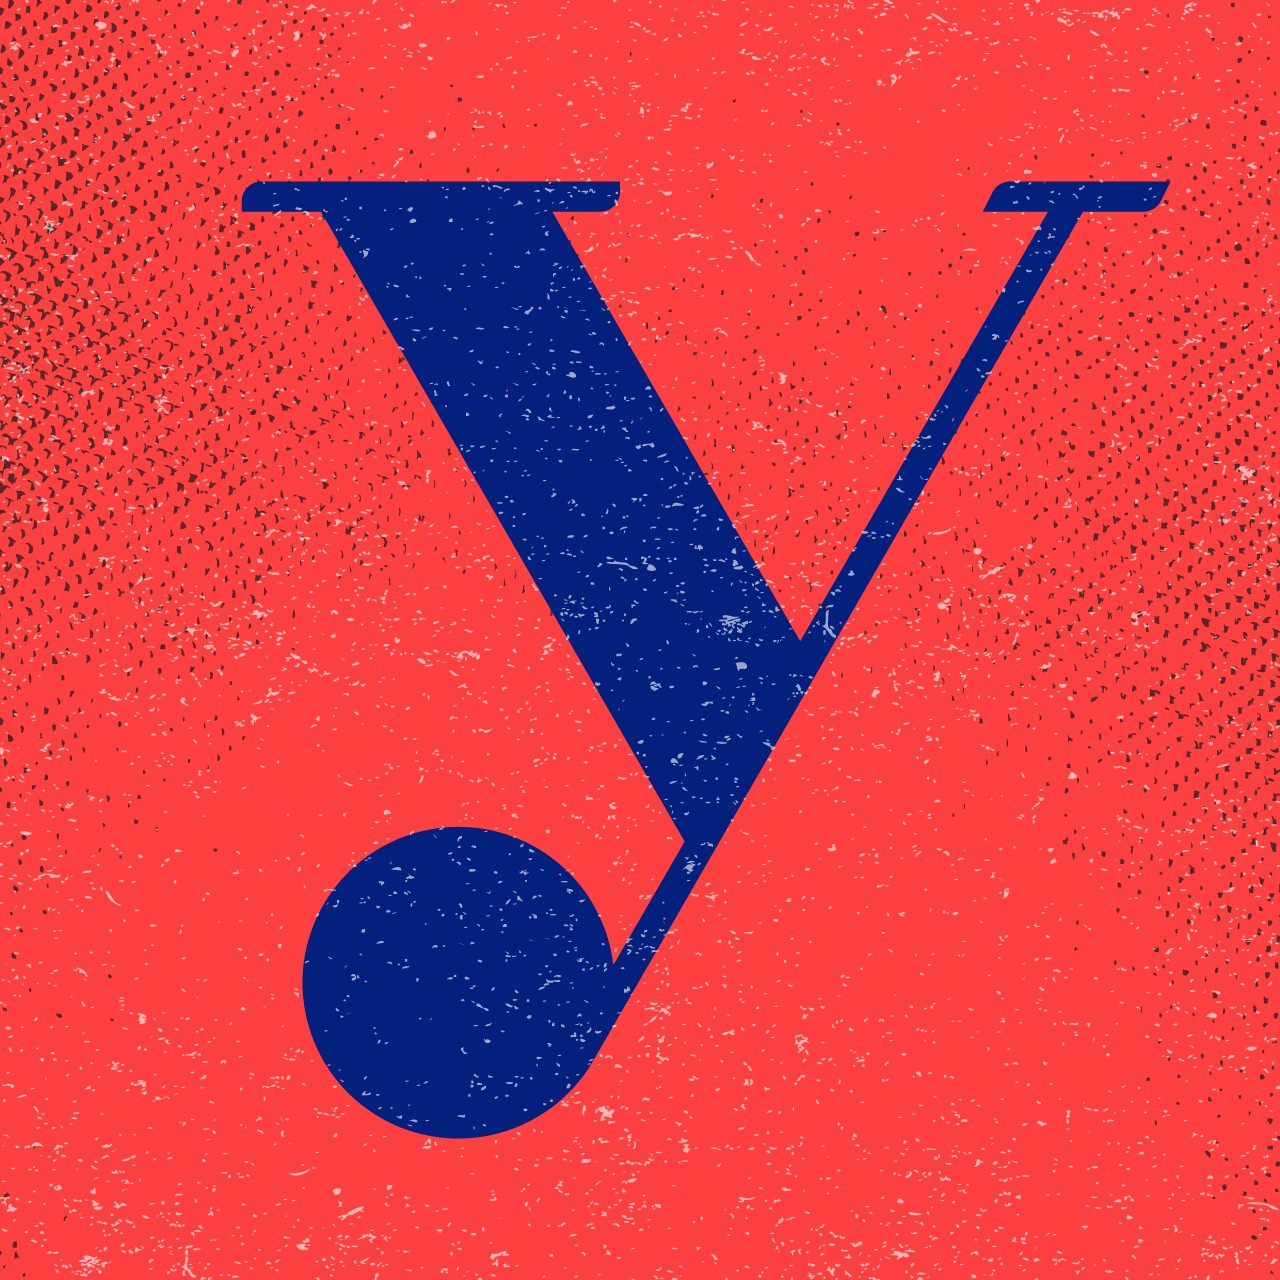 My Y submission for 36 Days of Type